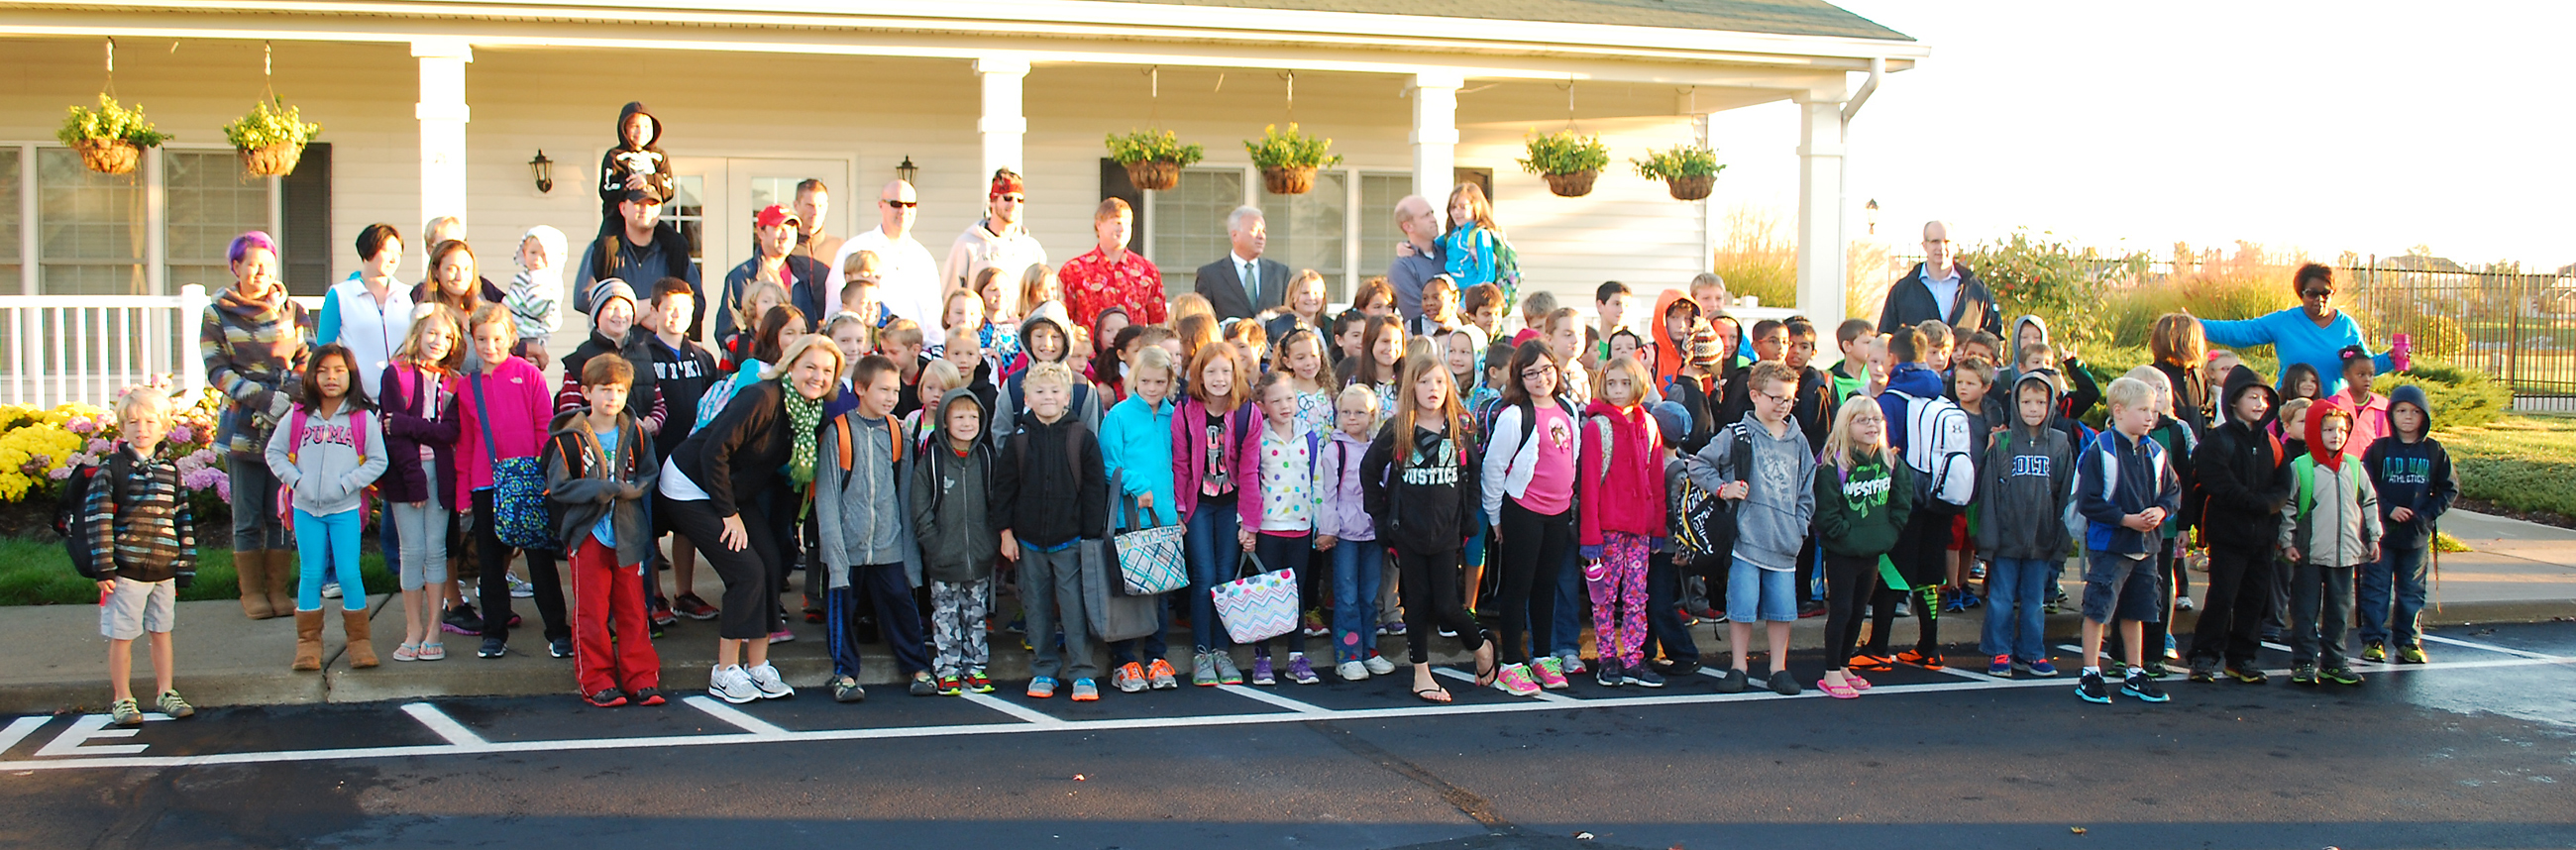 Students, parents and family members gathered at the Countryside Clubhouse for a group picture before walking to school. (Photos by Robert Herrington)